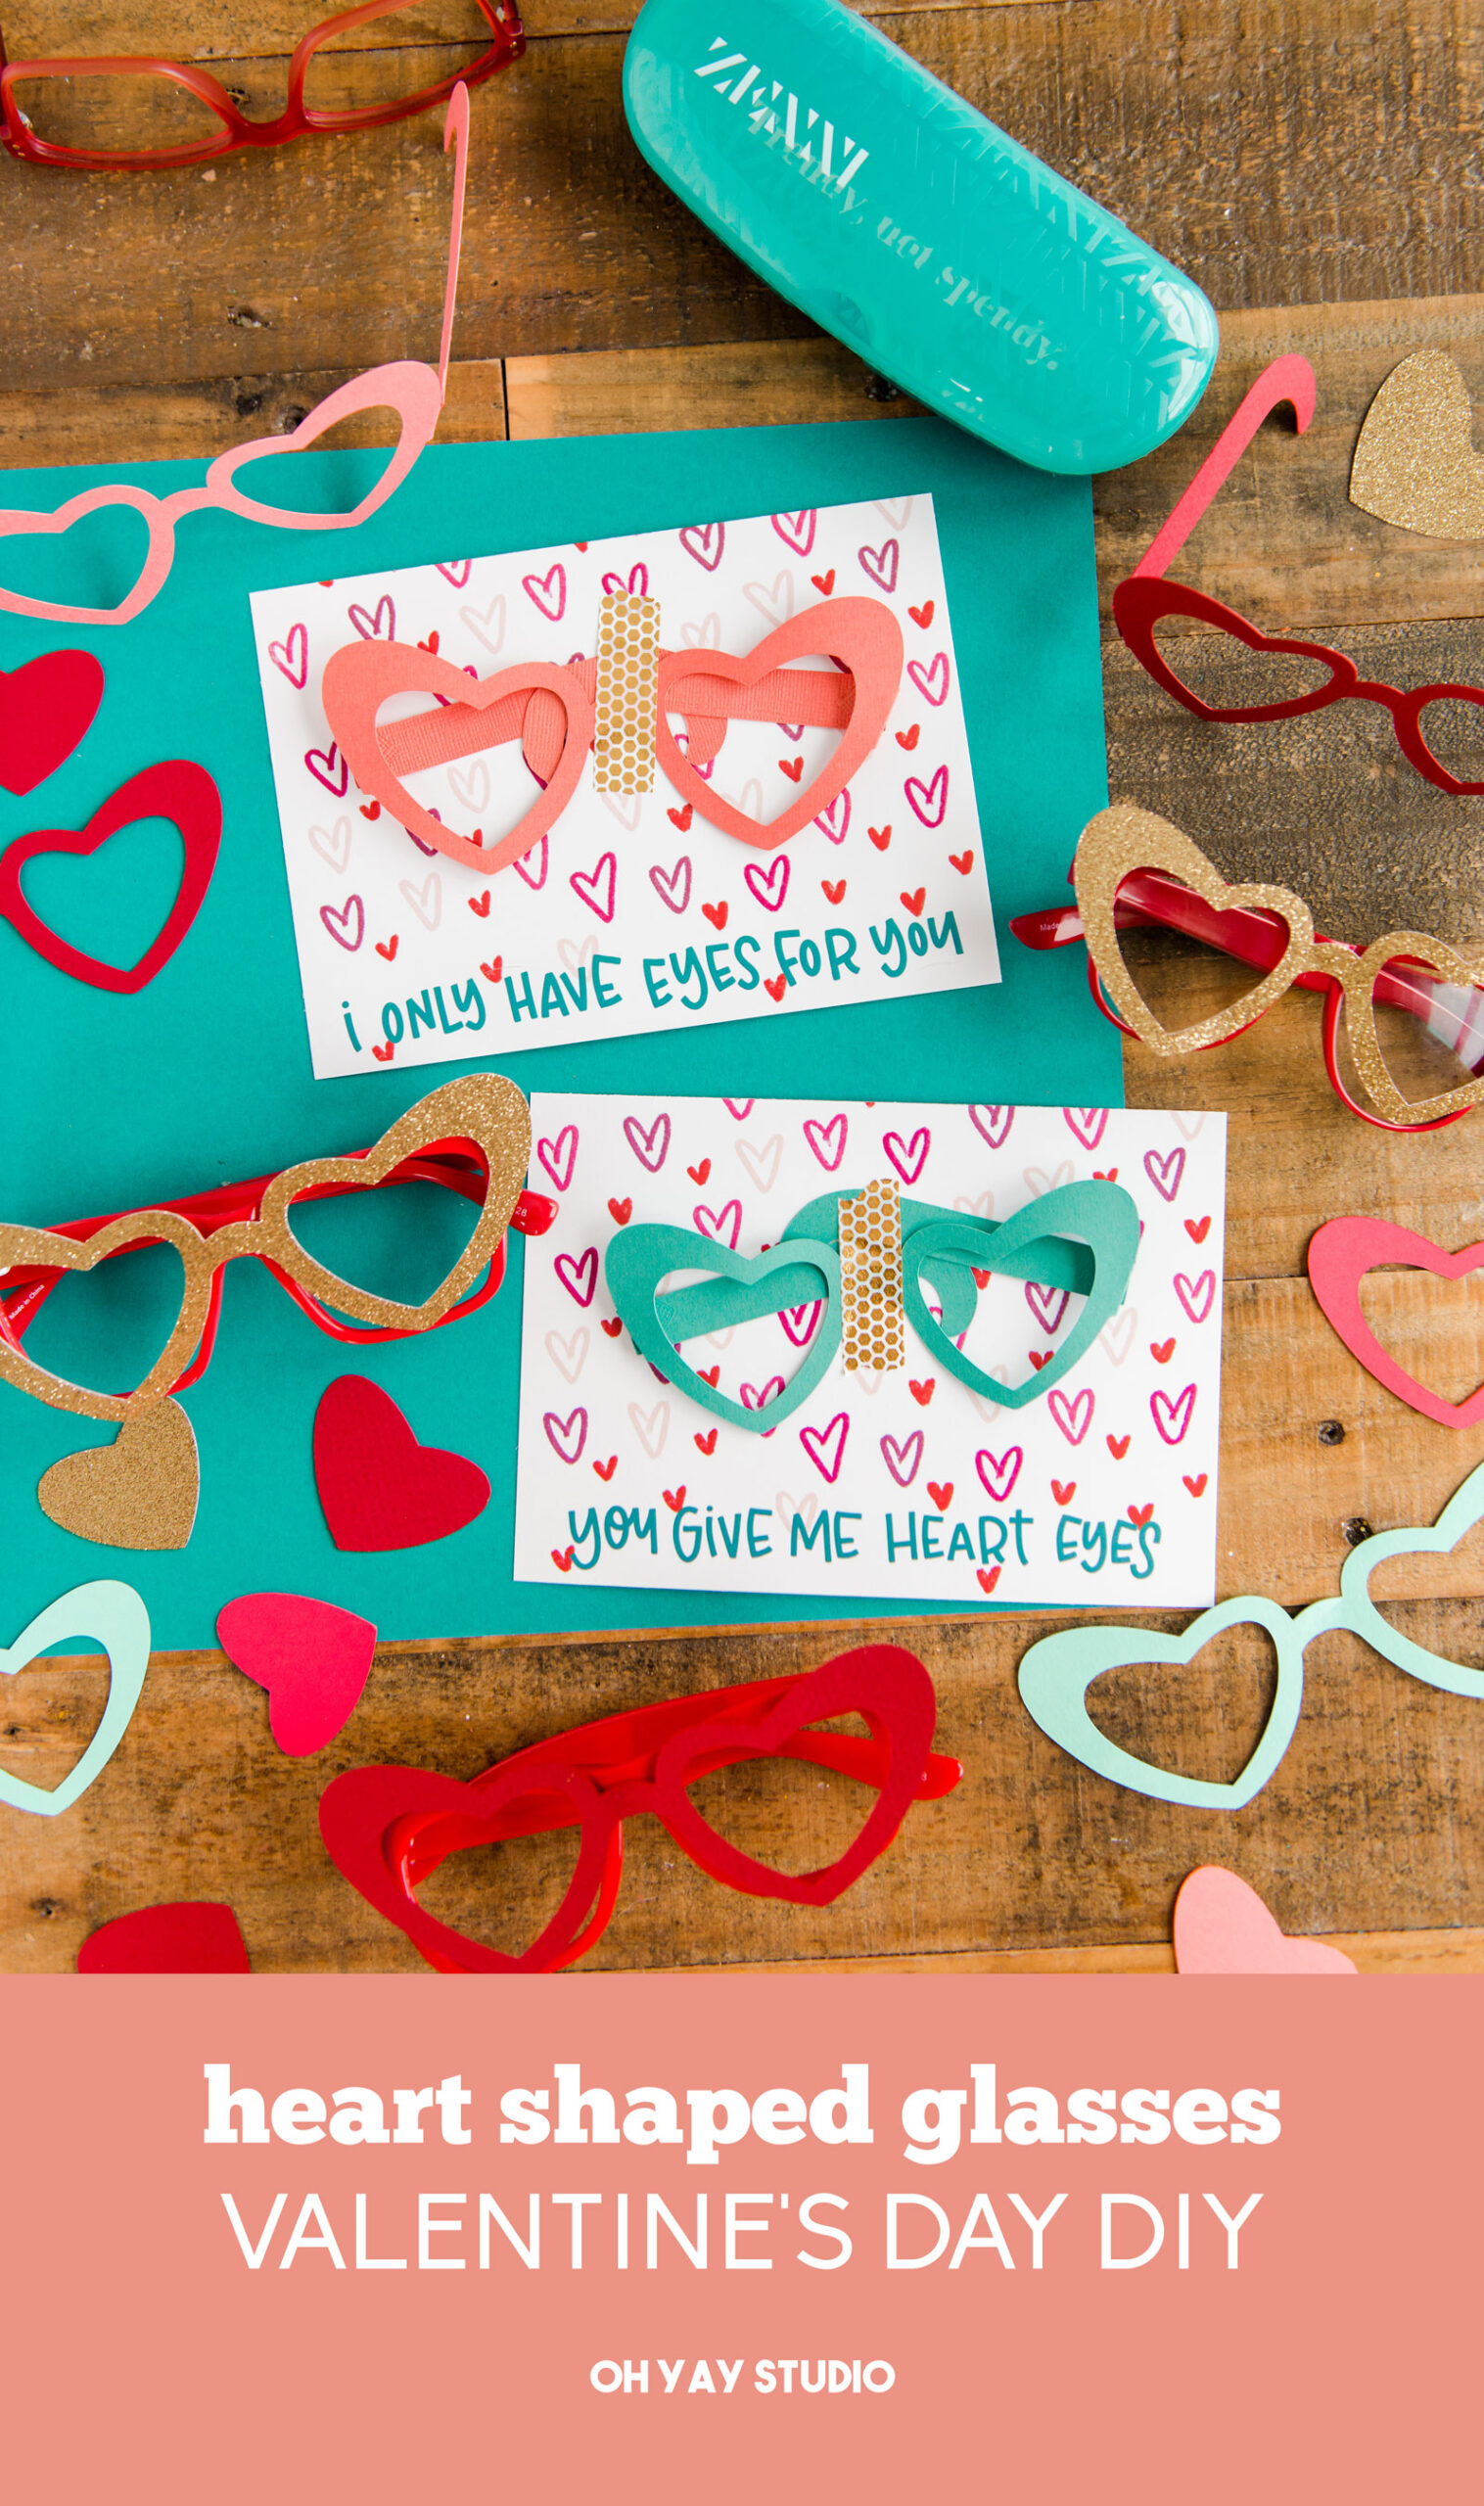 Heart shaped valentine day glasses, Heart shape SVG file, Free Valentine Day SVG file, Valentine day DIY SVG, Valentine Day heart glasses